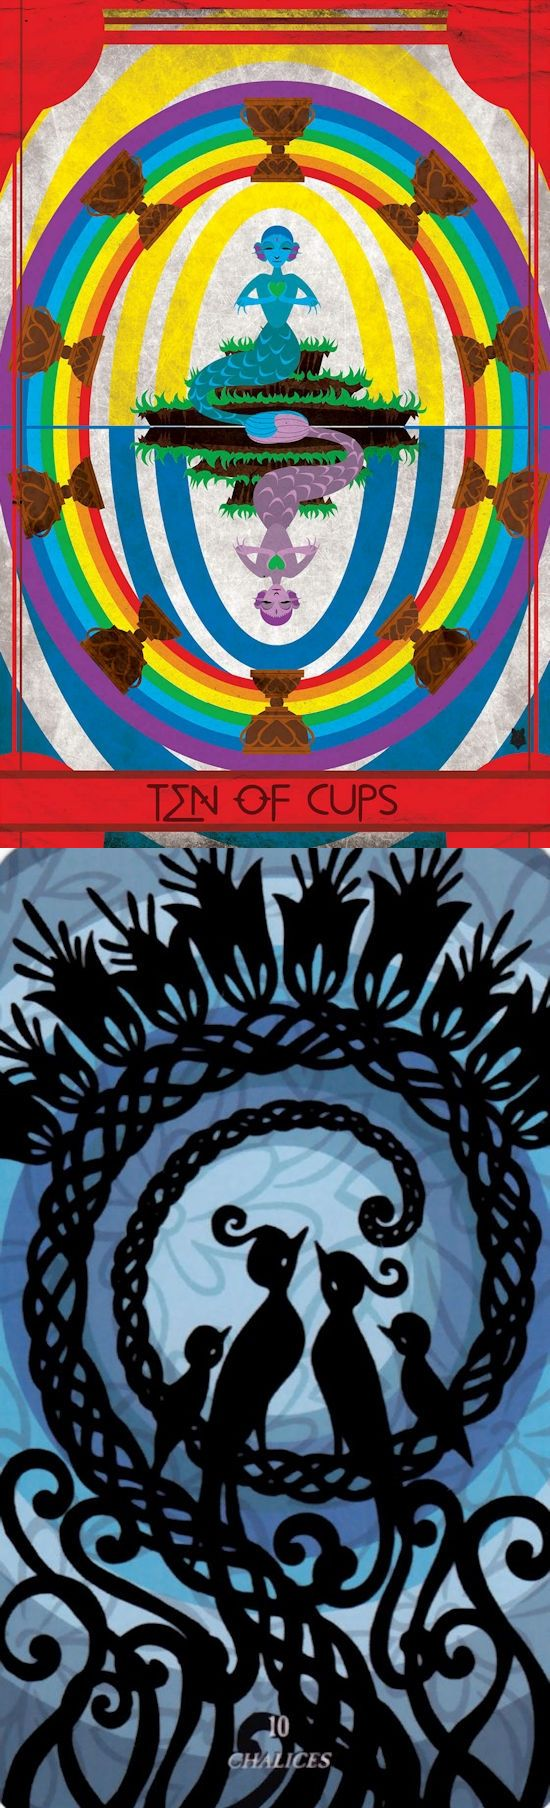 Ten of Cups: happiness and shattered dreams (reverse). Ellis Tarot deck and Silhouette Tarot deck: tarottablecloth, tarot card of the day and free online tarot reading predictions. Best 2018 ritual and tarot cards art. #strength #ritual #trickortreat